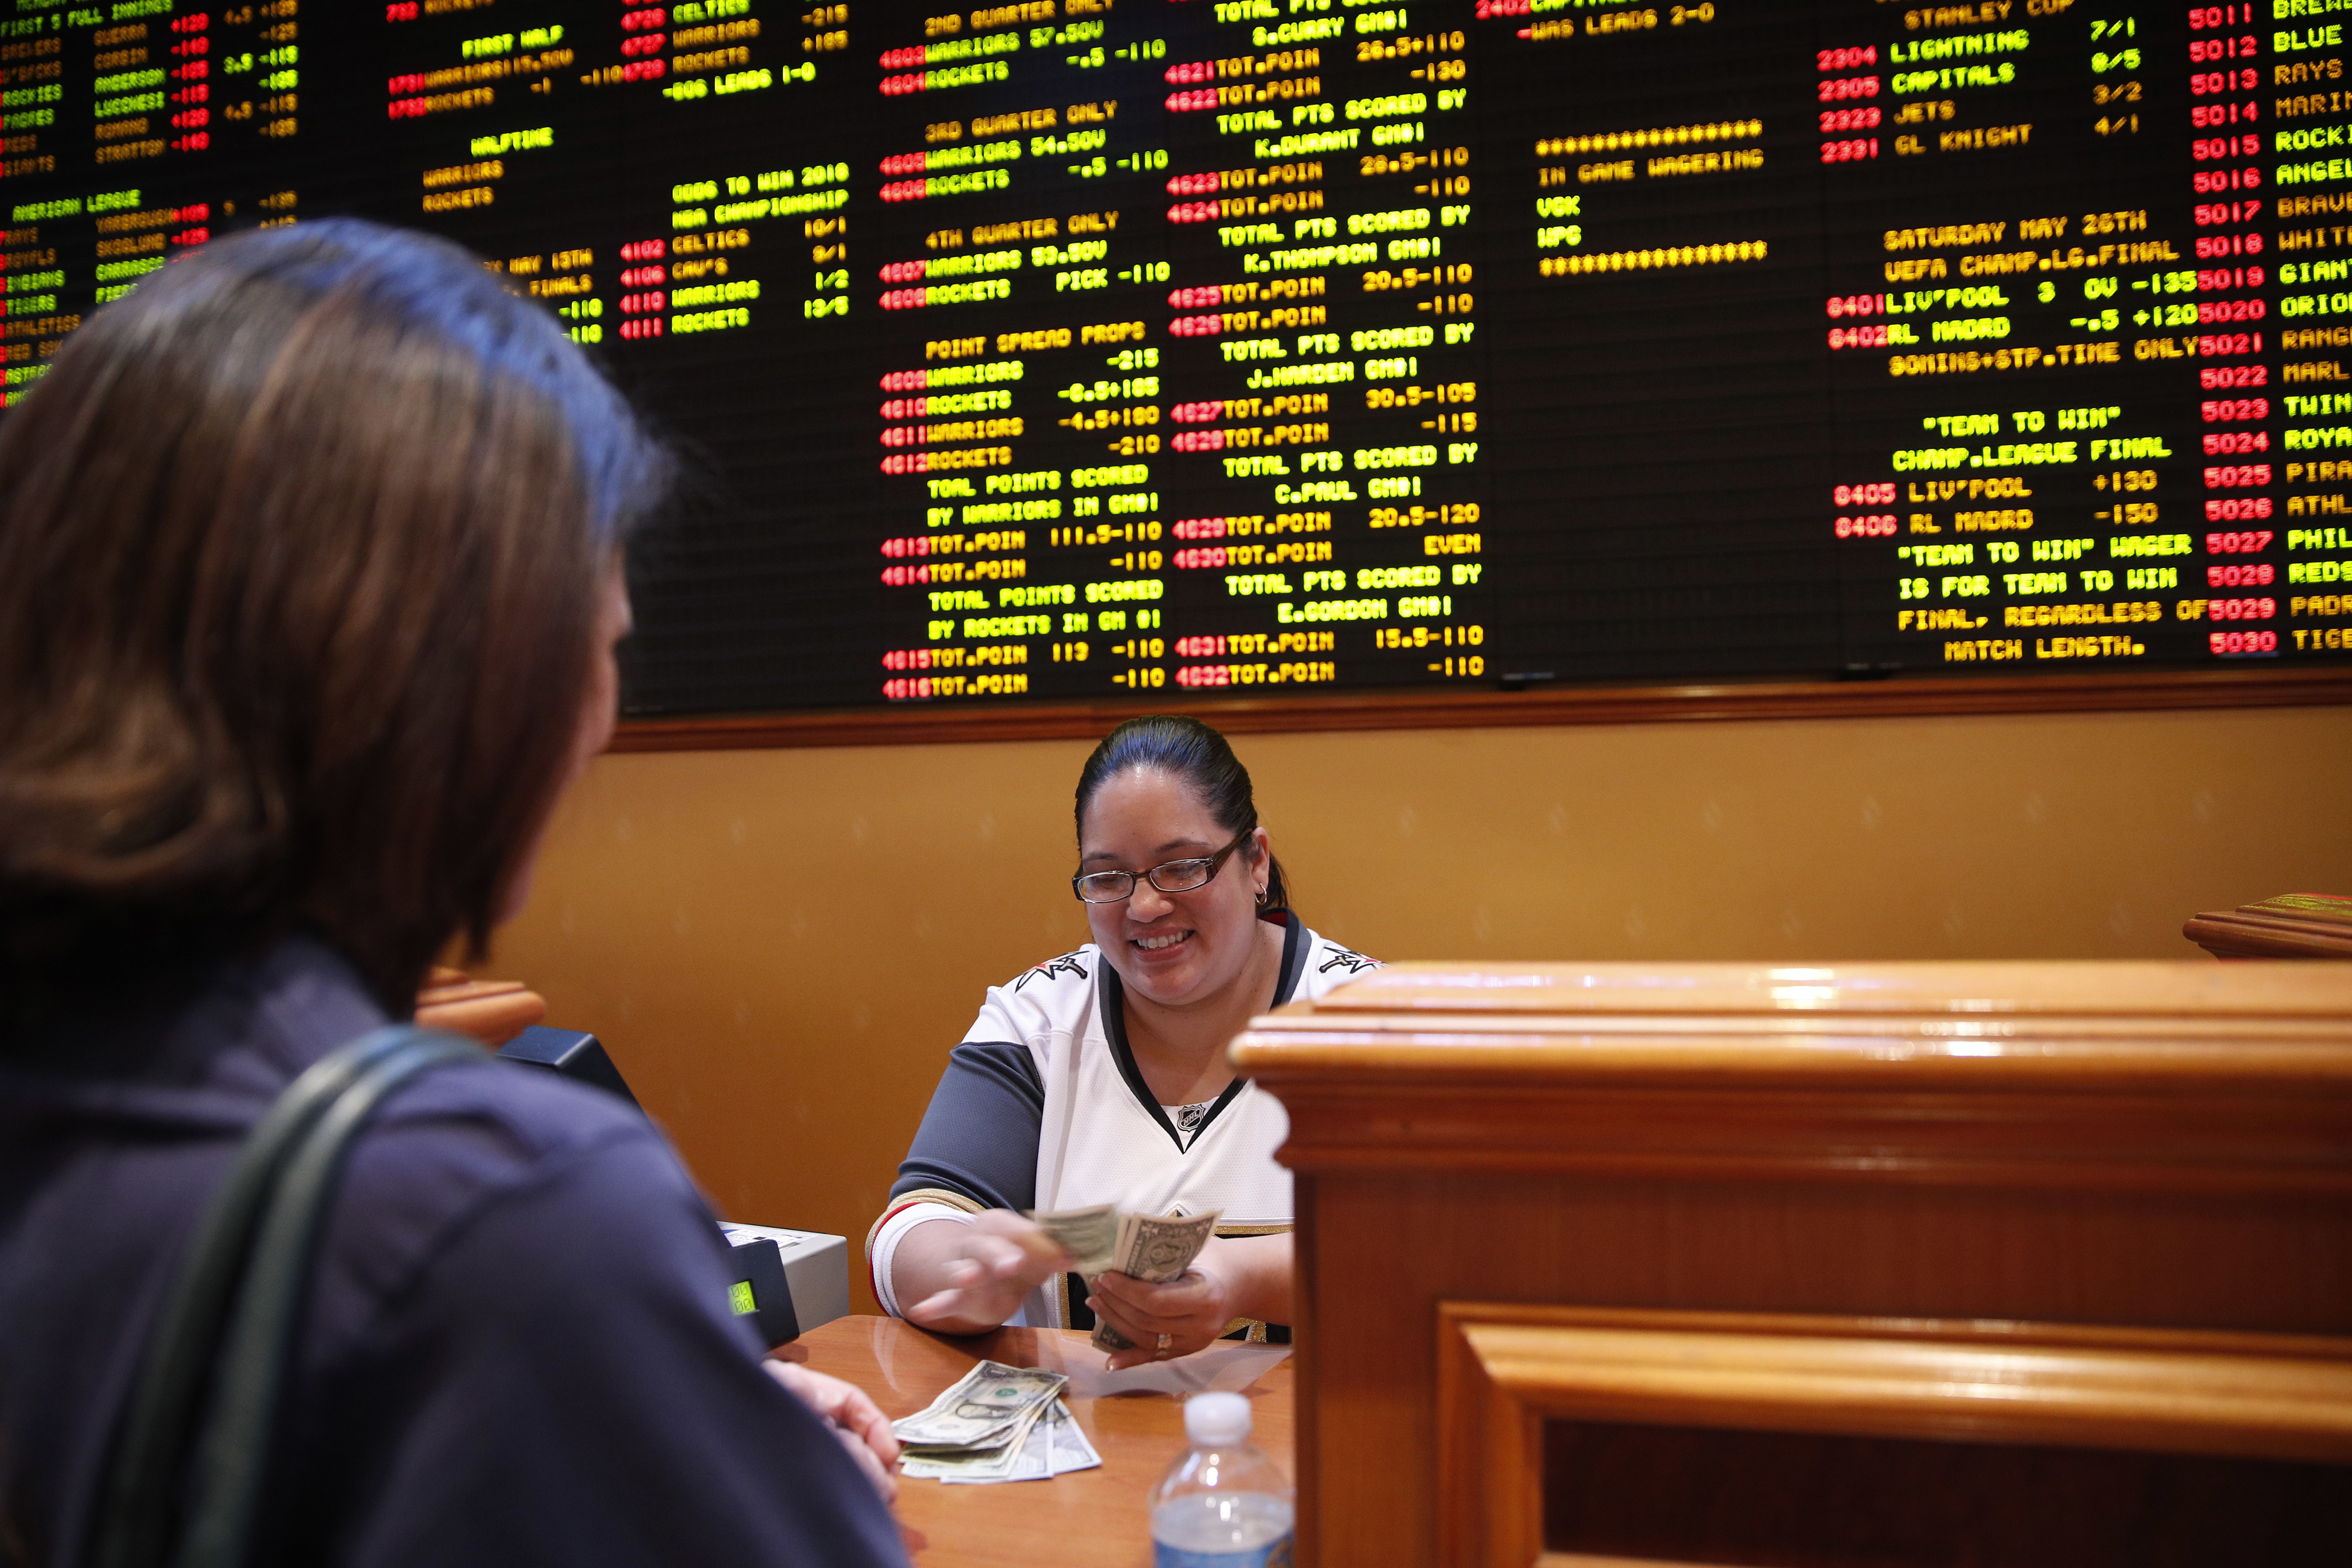 Let your voice be heard on sports betting